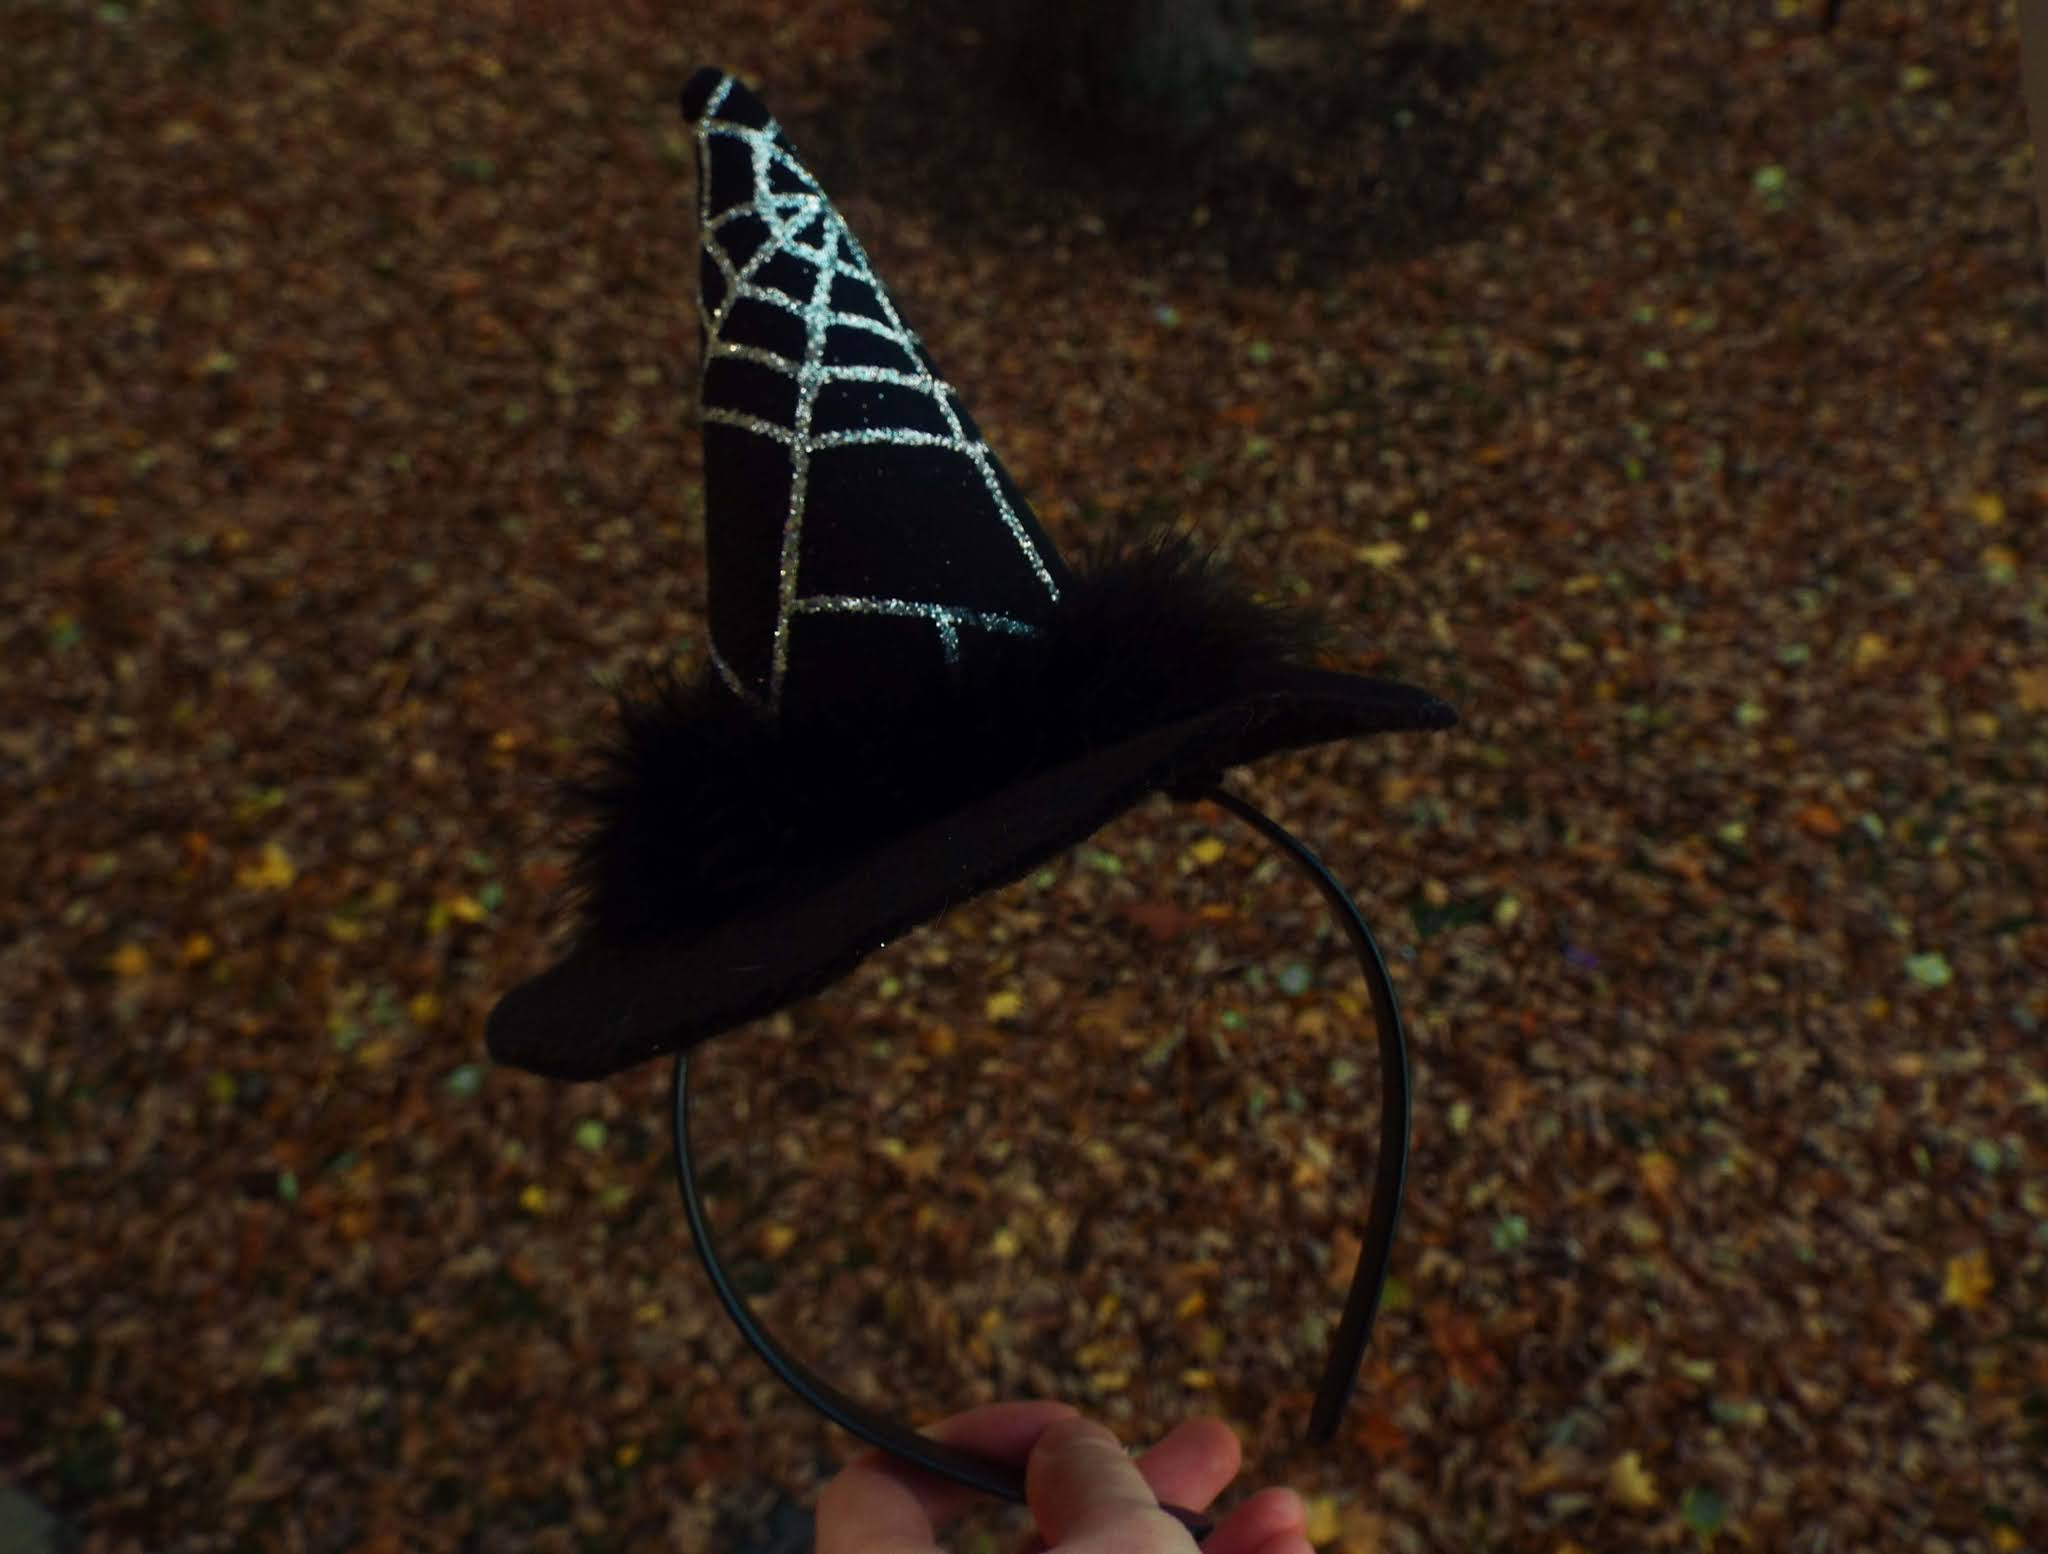 Witches hat held out in Autumnal, golden, leafy backdrop, symbolising my Hallotober Tag.